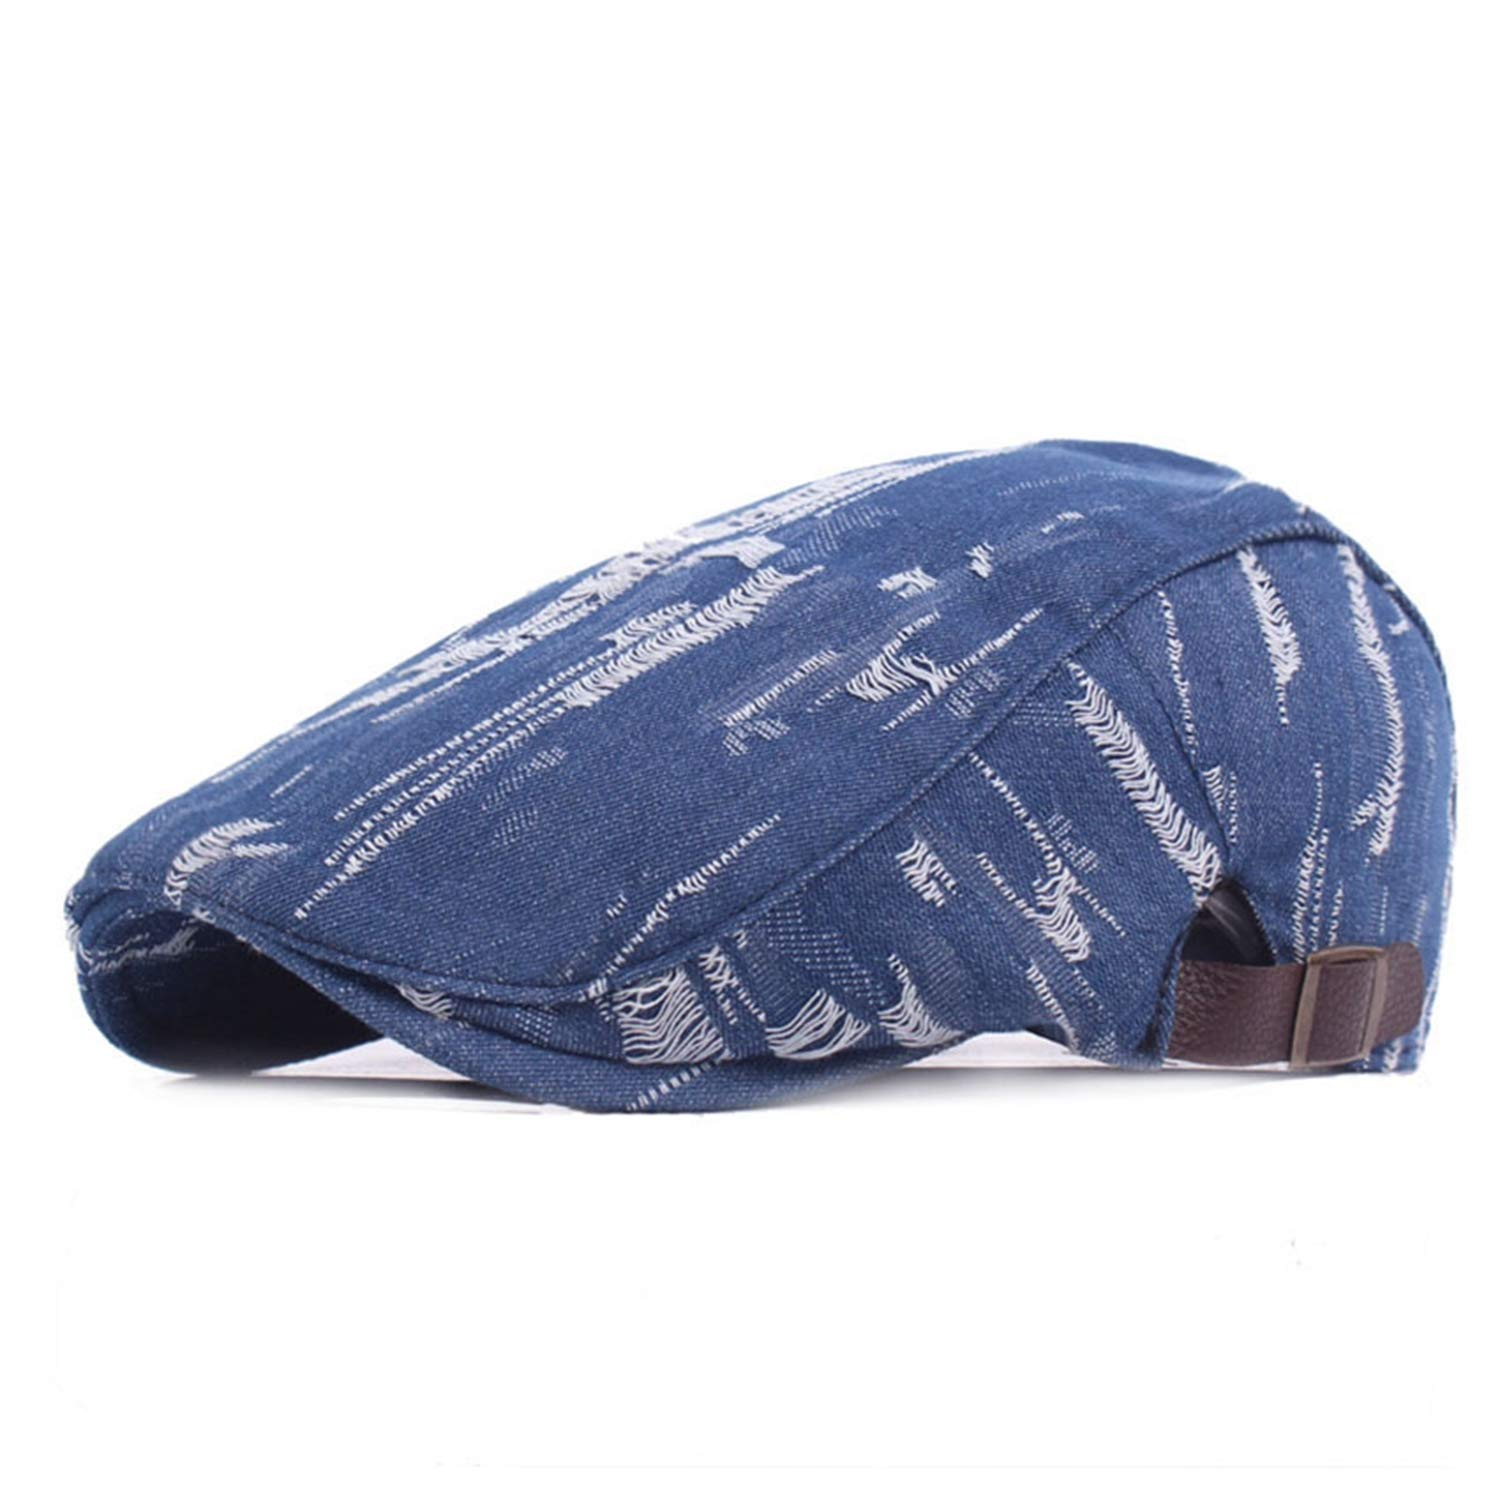 Denim Ivy Caps for Men Women British Ripped Jeans Flat Cap Berets Spring  Autumn Vintage Fashion Hats and Caps Blue One Size at Amazon Men s Clothing  store  e1540b4843e